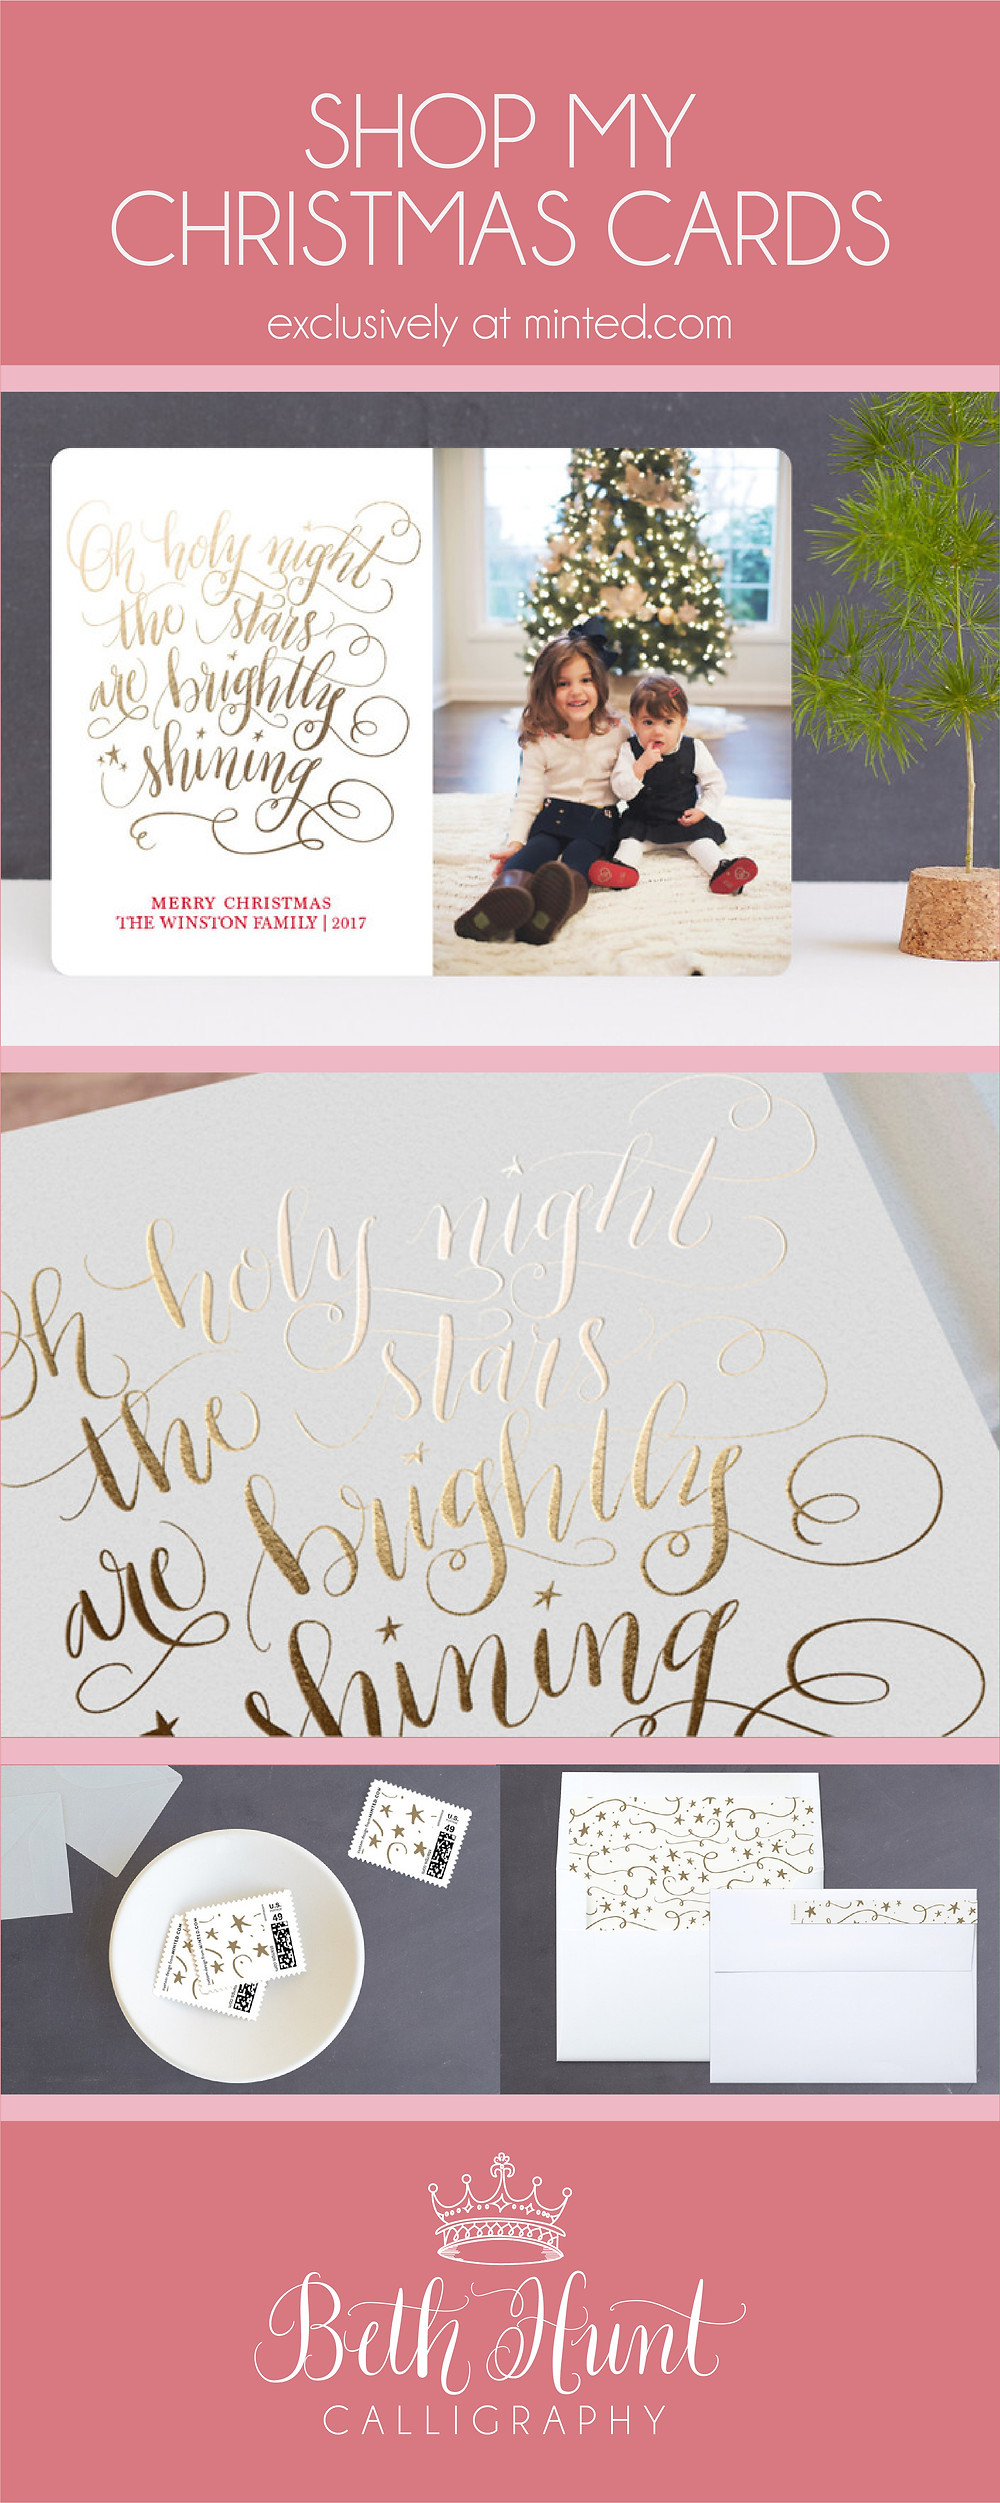 Christmas card designs by Beth Hunt Calligraphy on Minted!